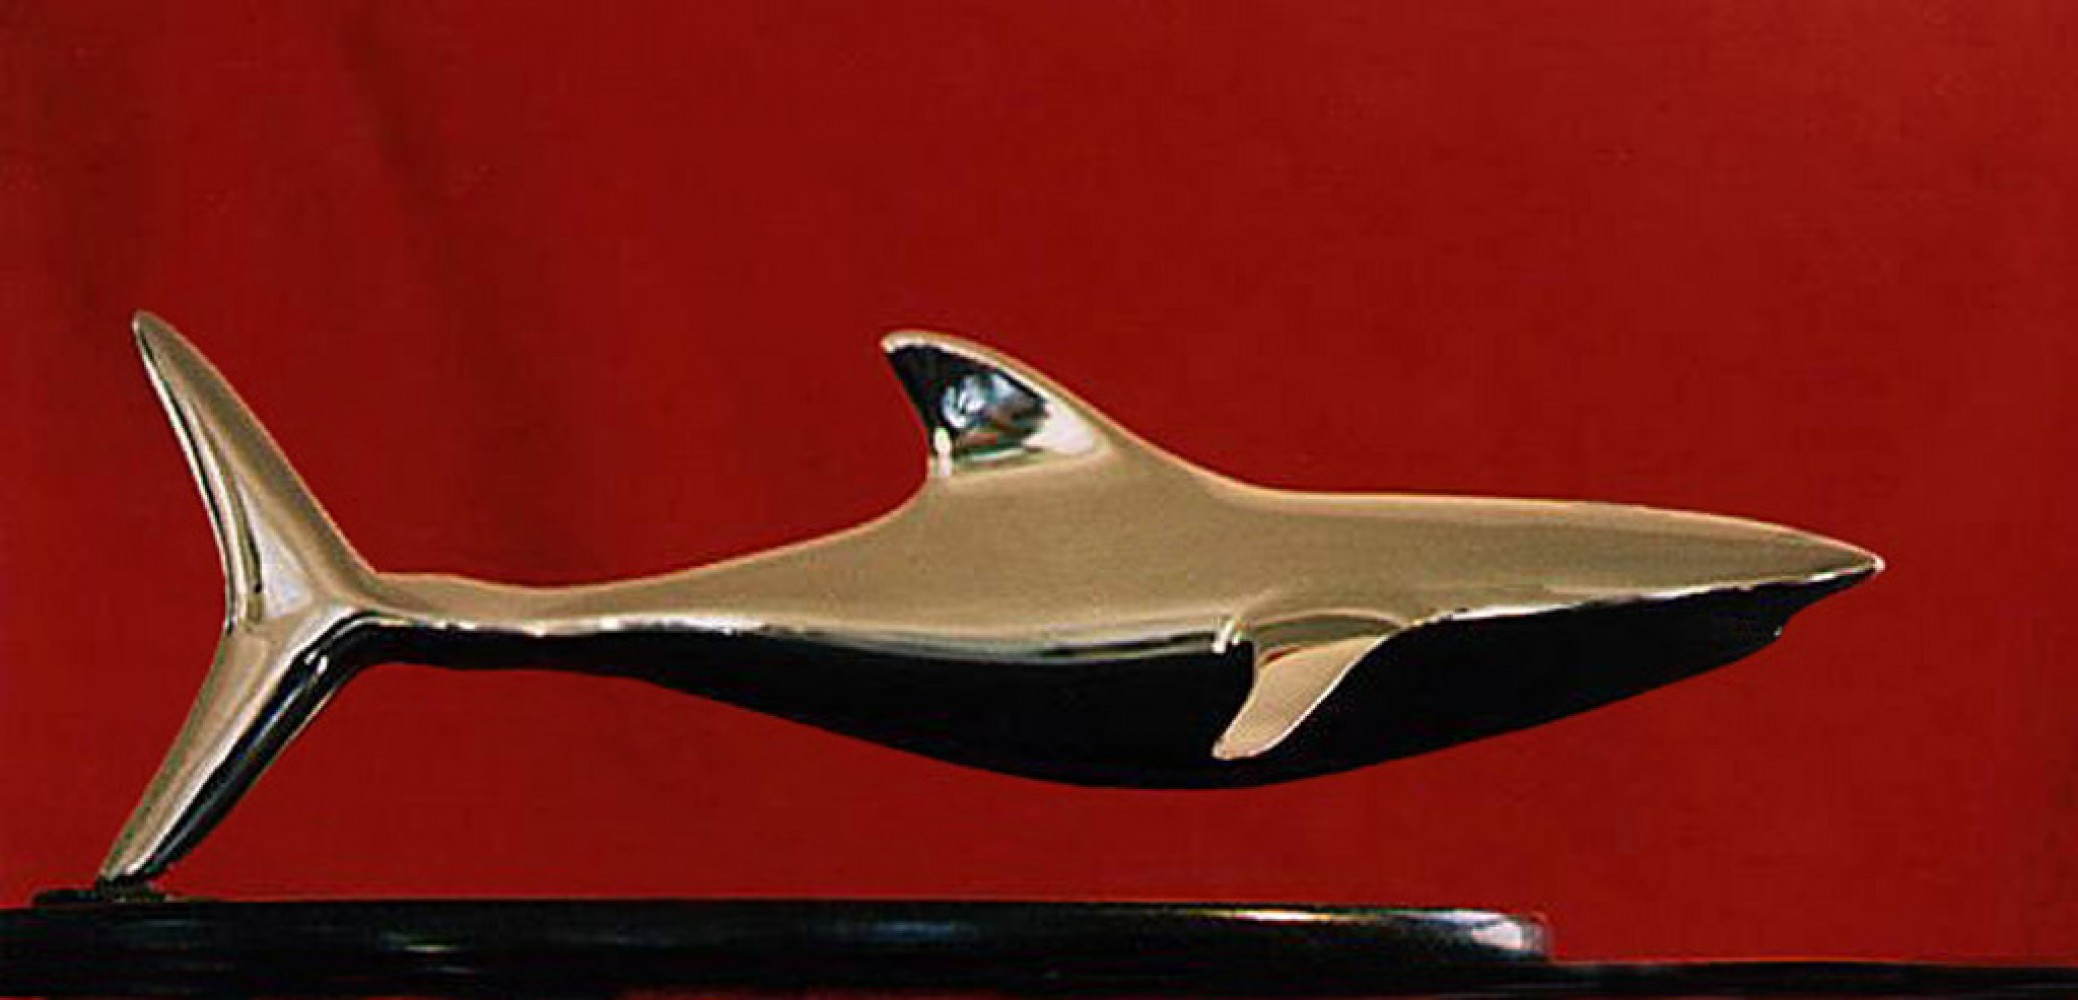 Shark Stainless Steel Sculpture 1989 21 in